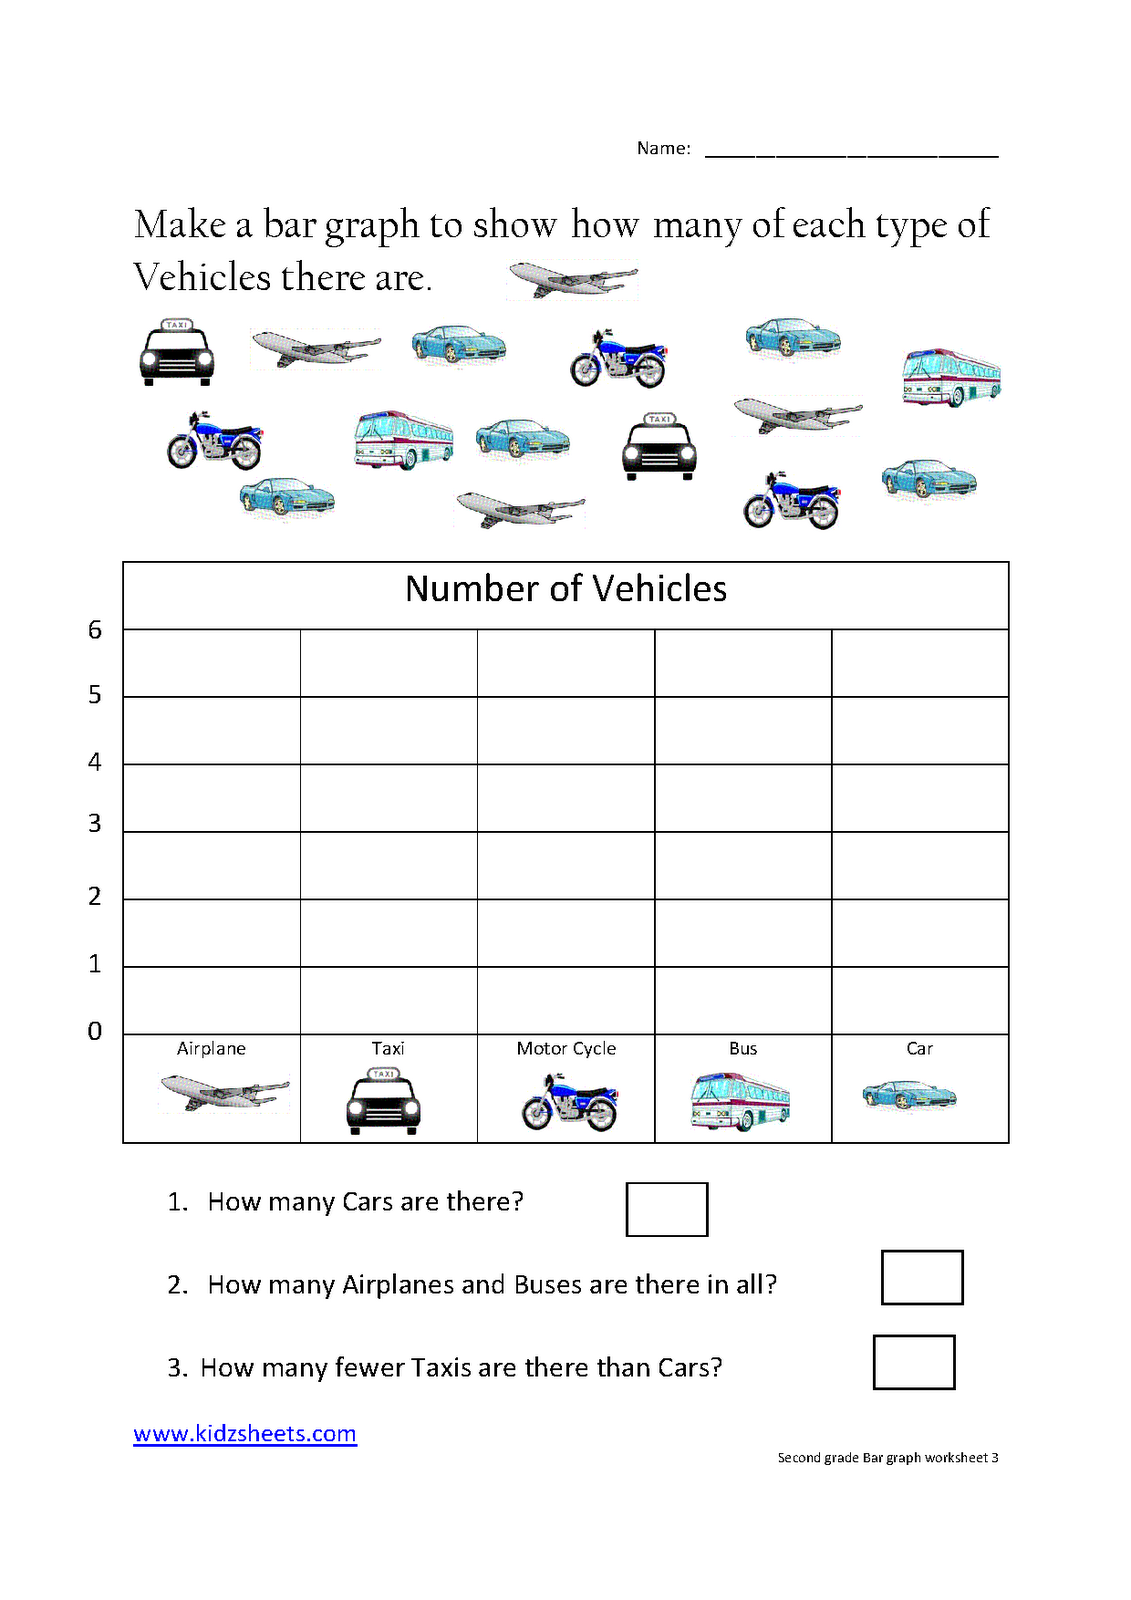 kidz worksheets: second grade bar graph worksheet3